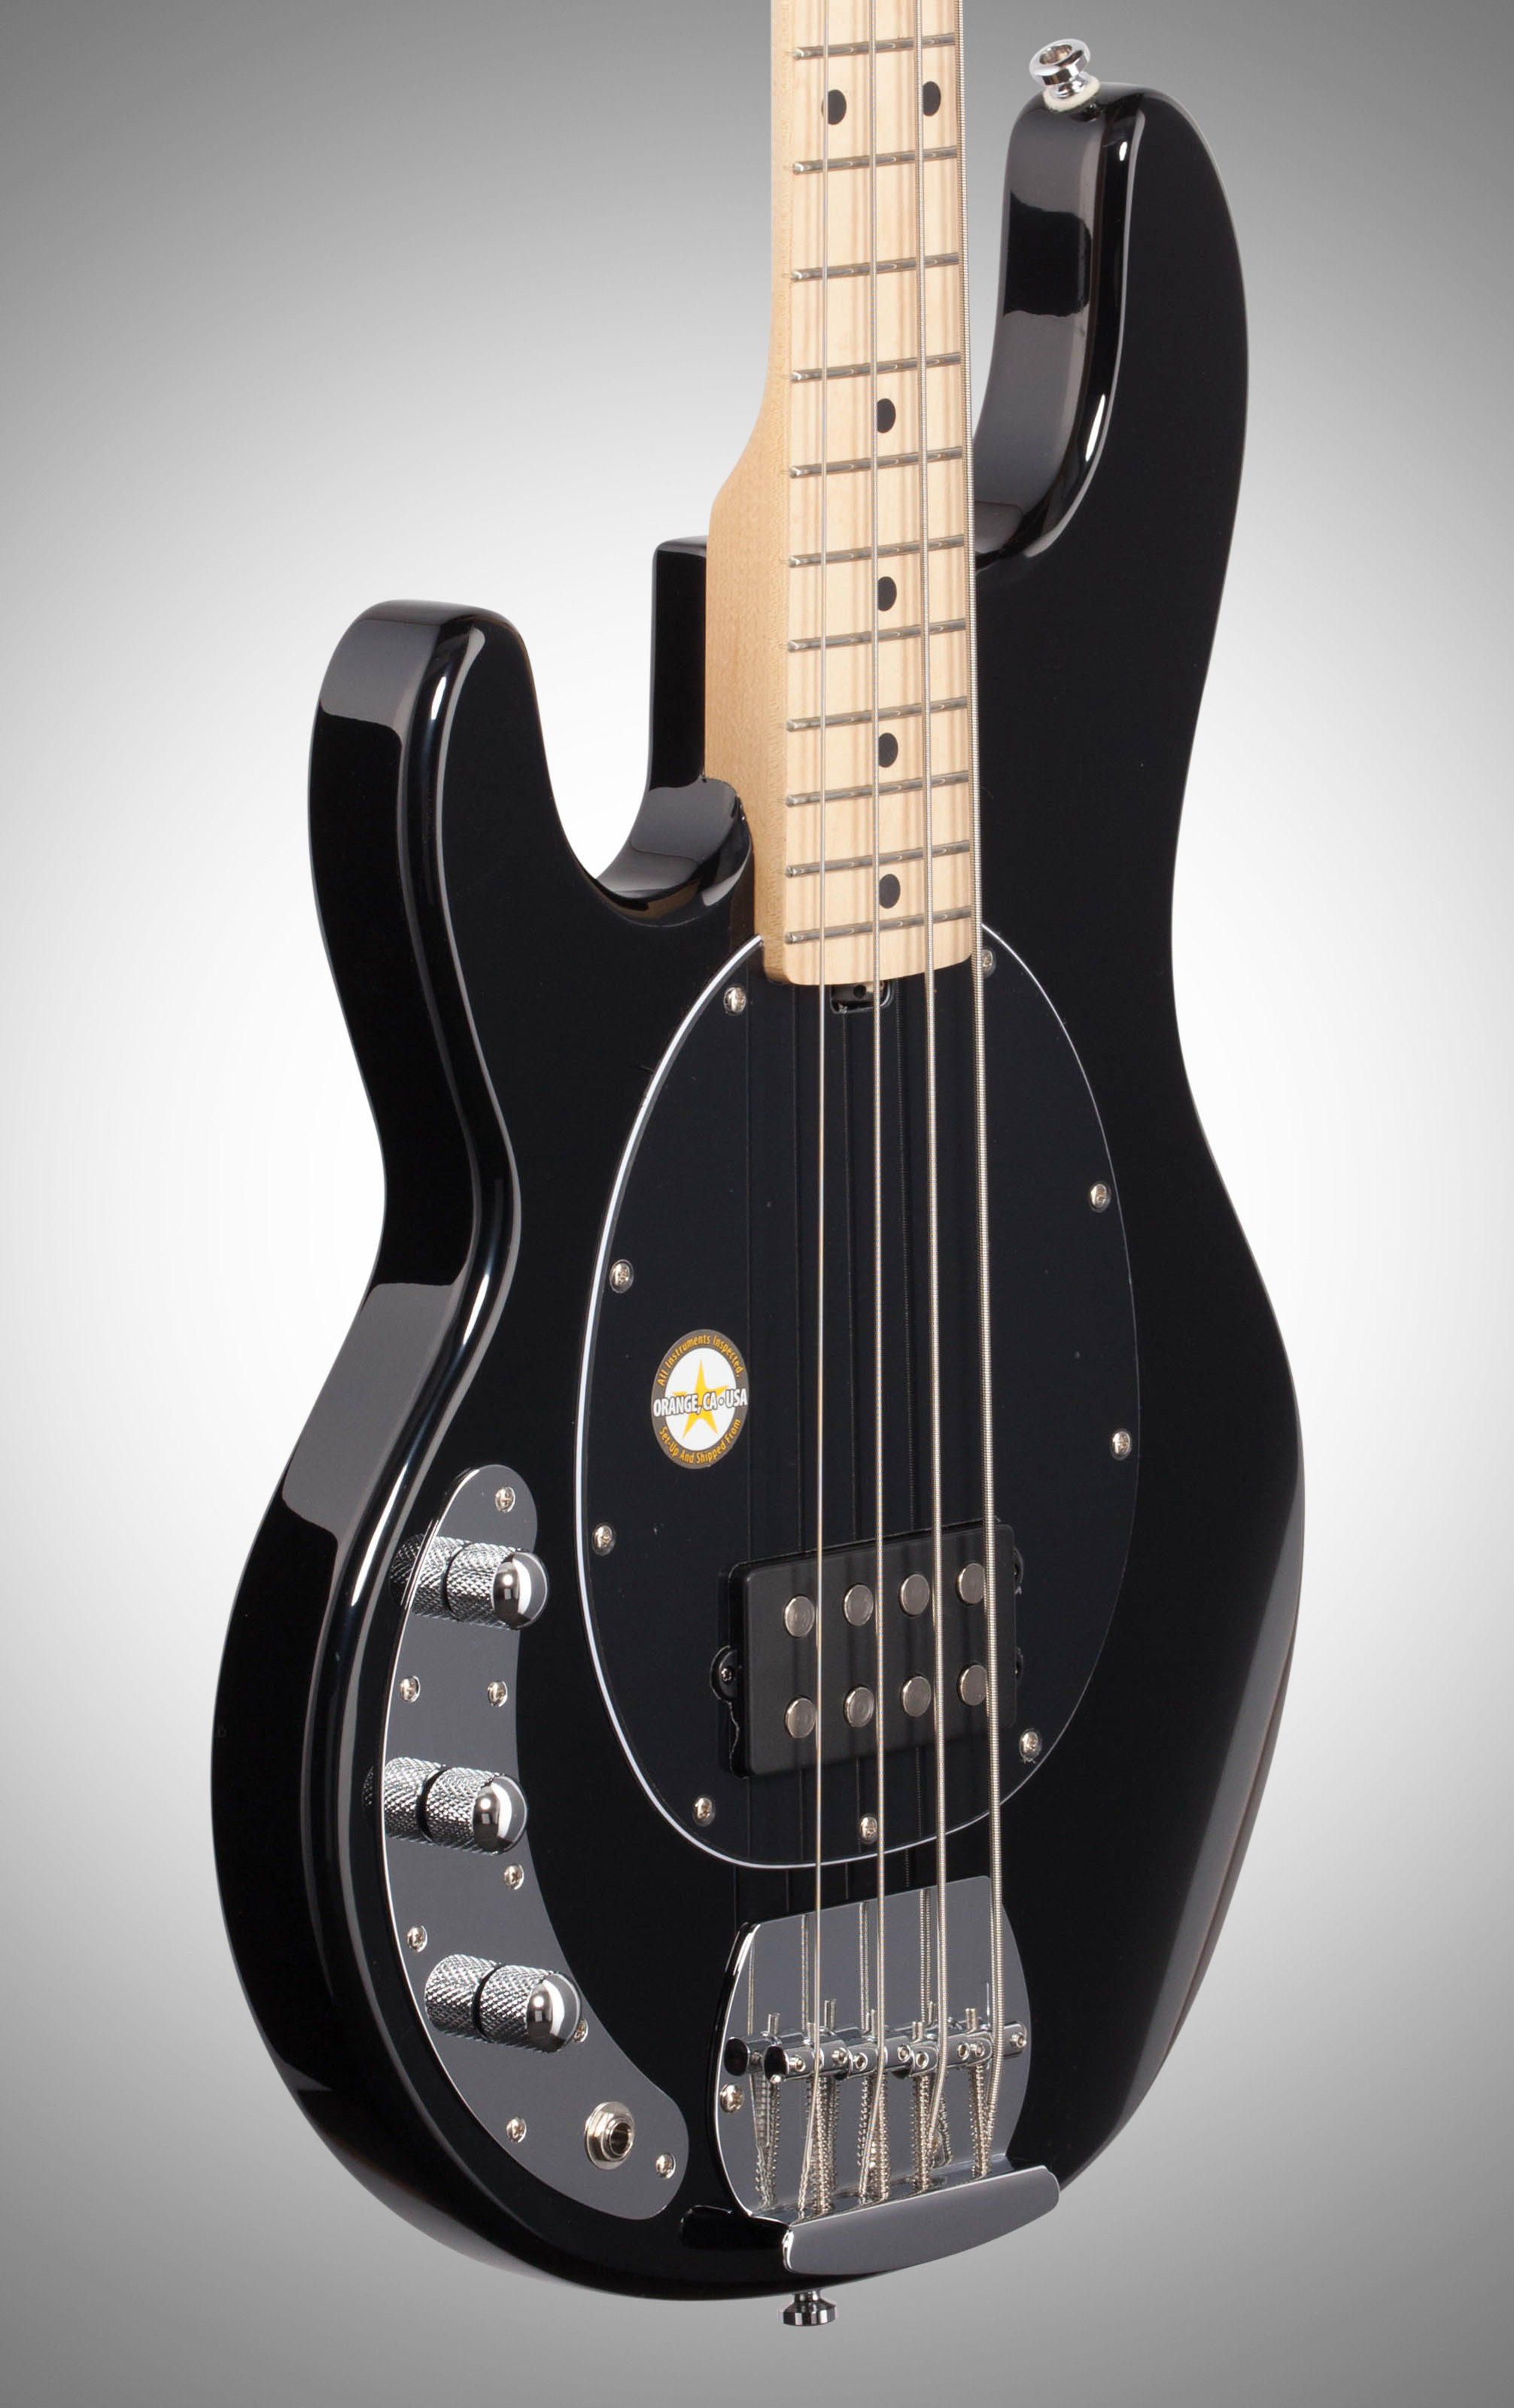 musicman sub 1 guitar review